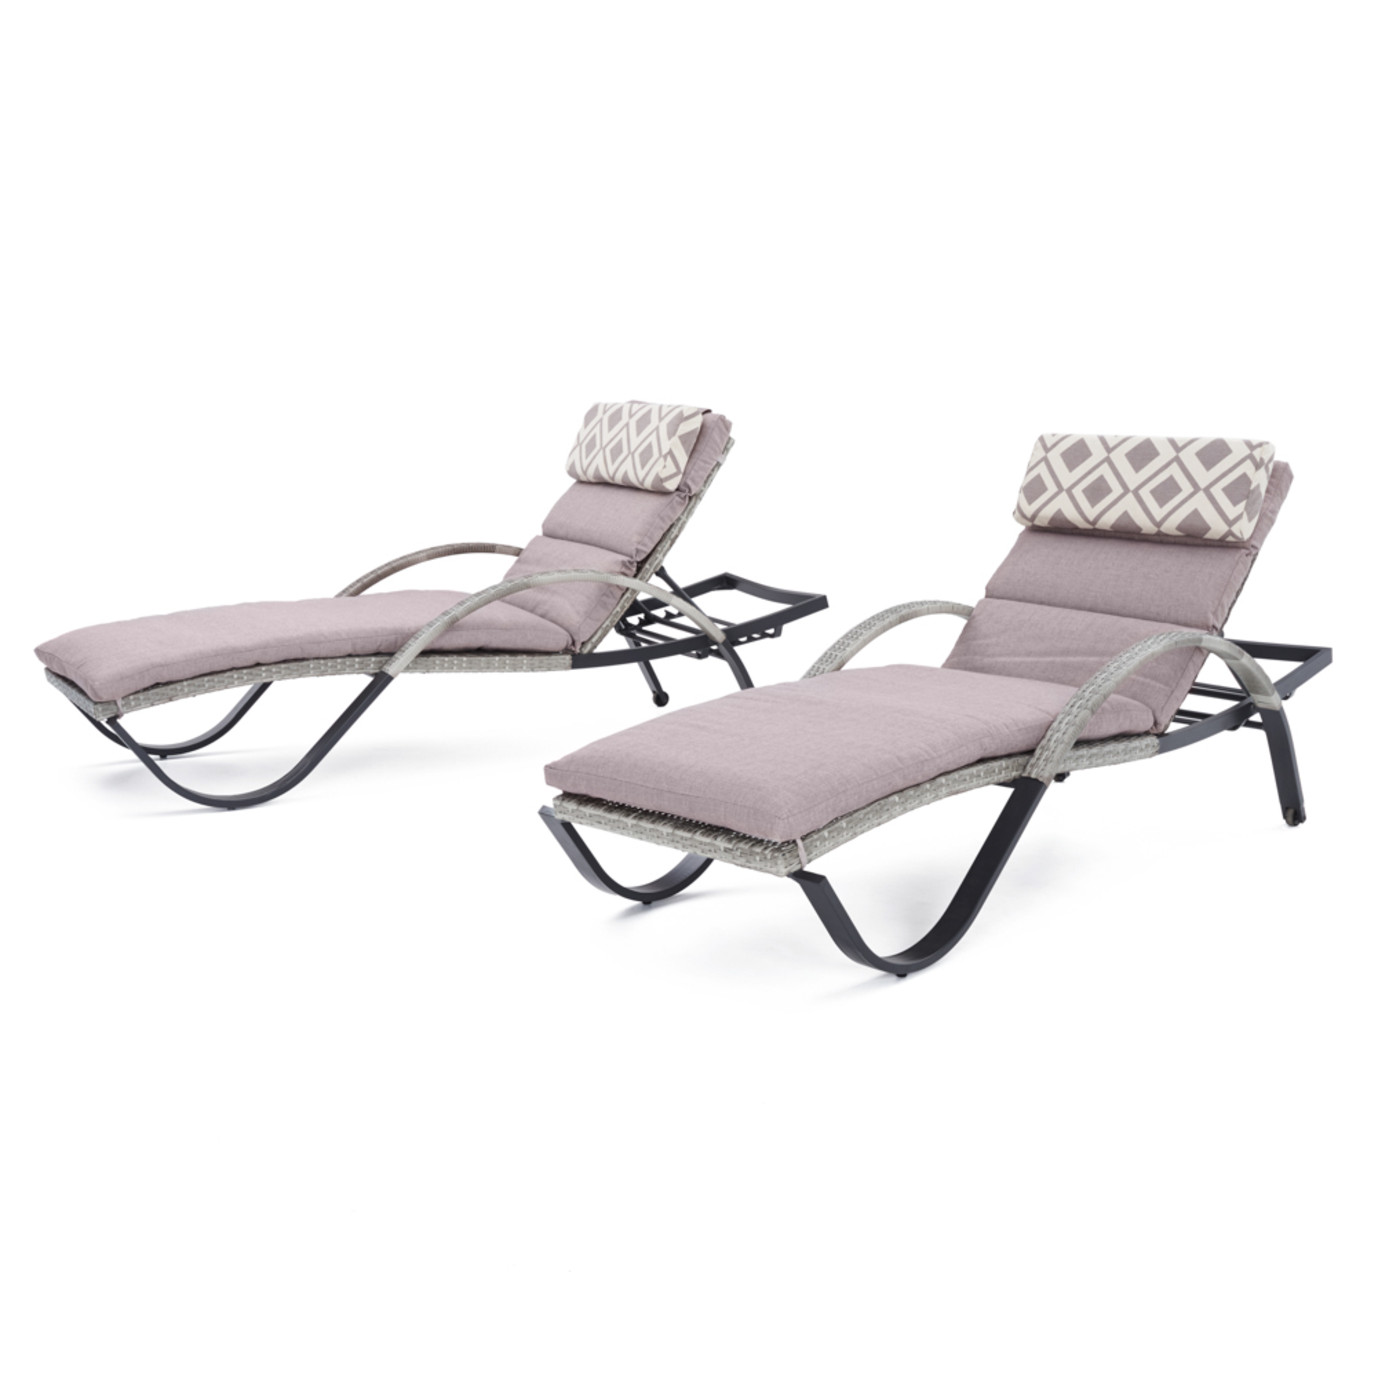 Cannes™ Chaise Lounge 2pk- Wisteria Lavender